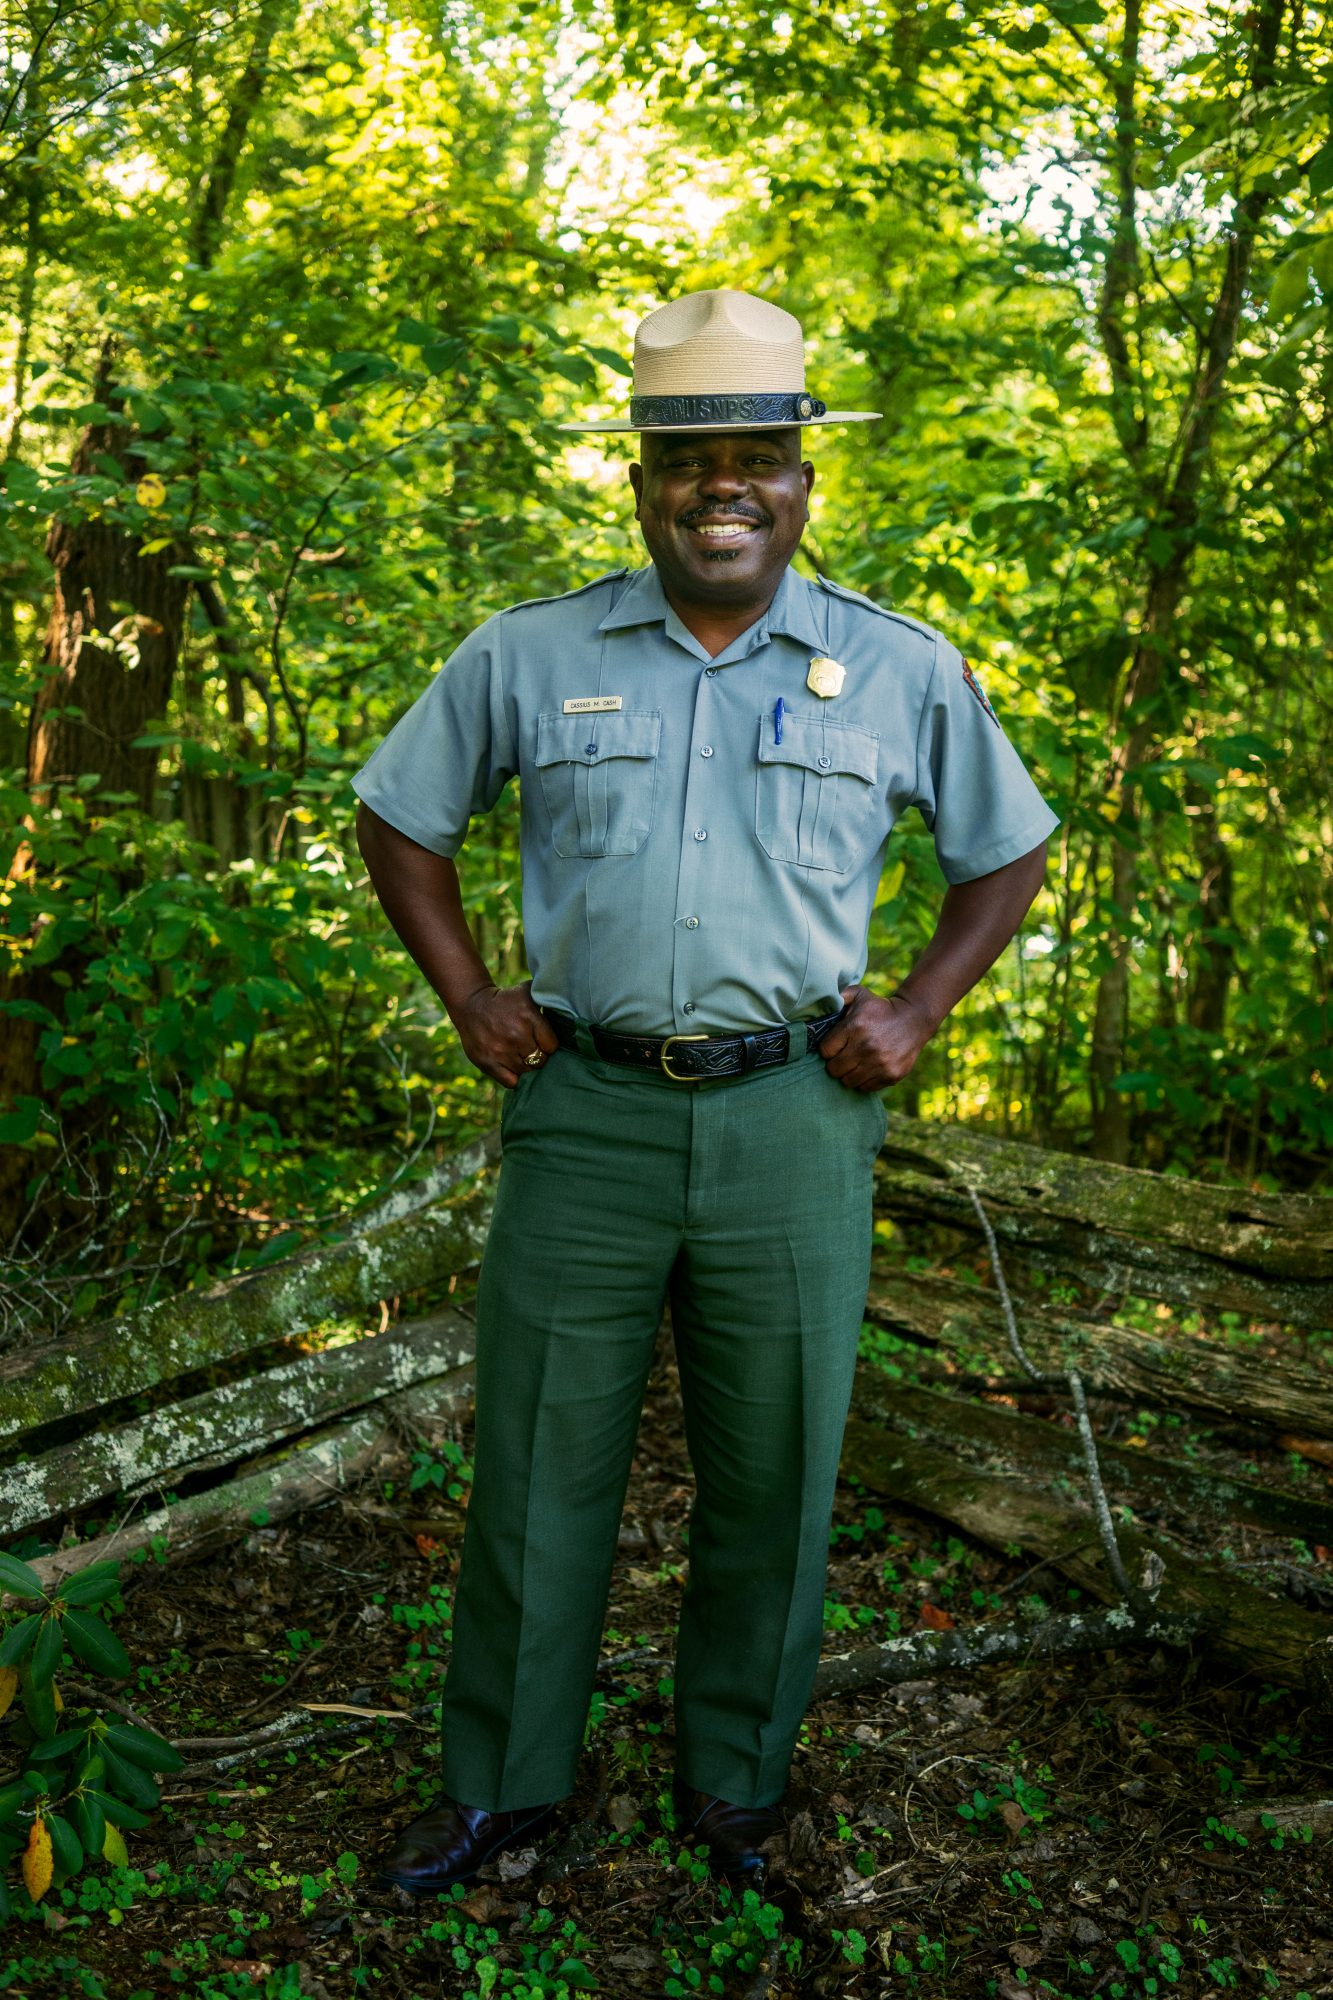 Great Smoky Mountain National Park superintendent Cassius Cash